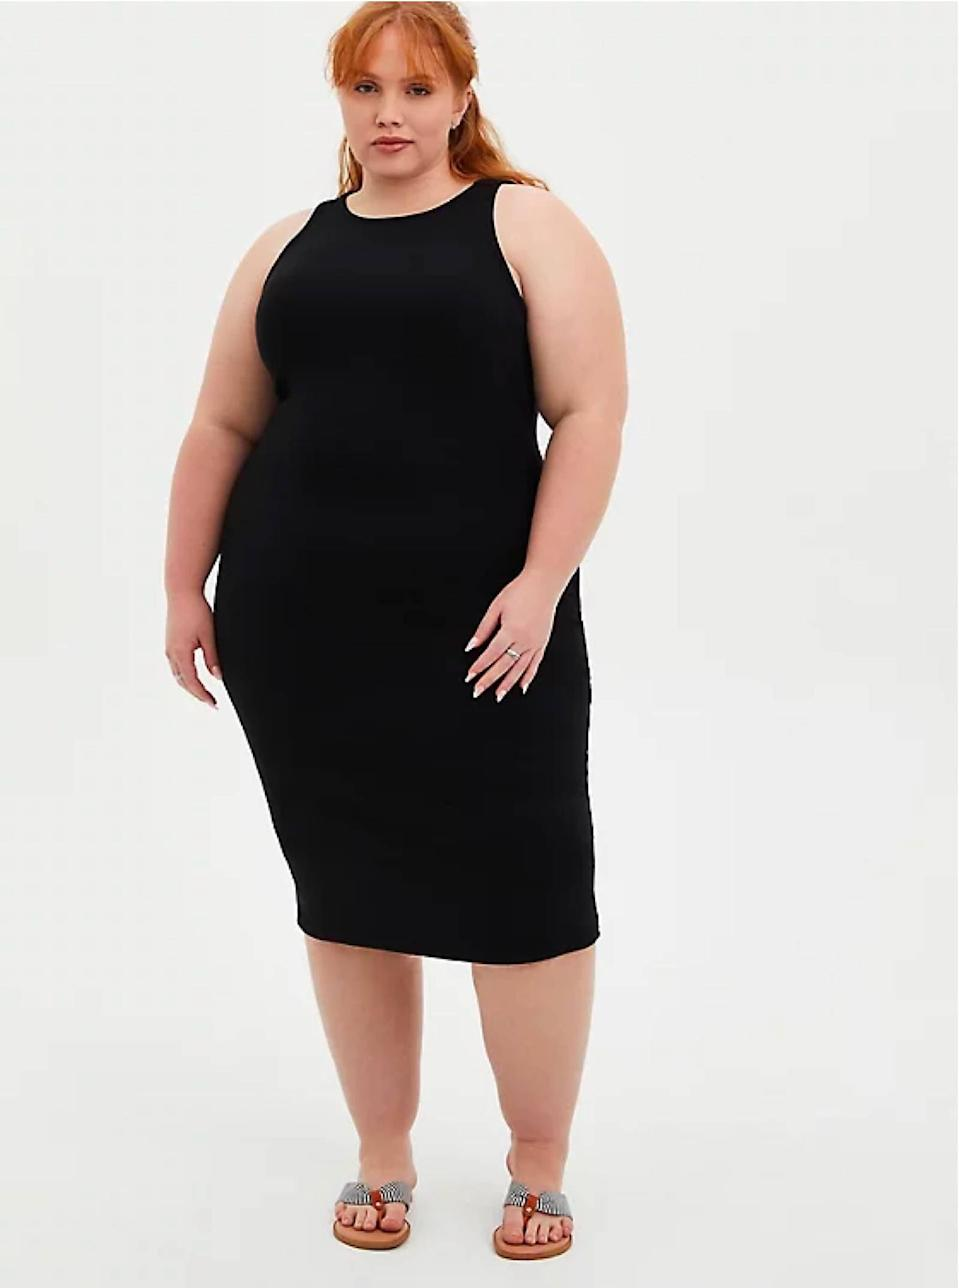 """Need something you can wear from the BBQ to the bar? A curve-hugging LBD it is. $66, Torrid. <a href=""""https://www.torrid.com/product/black-rib-bodycon-dress/14938664.html?"""" rel=""""nofollow noopener"""" target=""""_blank"""" data-ylk=""""slk:Get it now!"""" class=""""link rapid-noclick-resp"""">Get it now!</a>"""